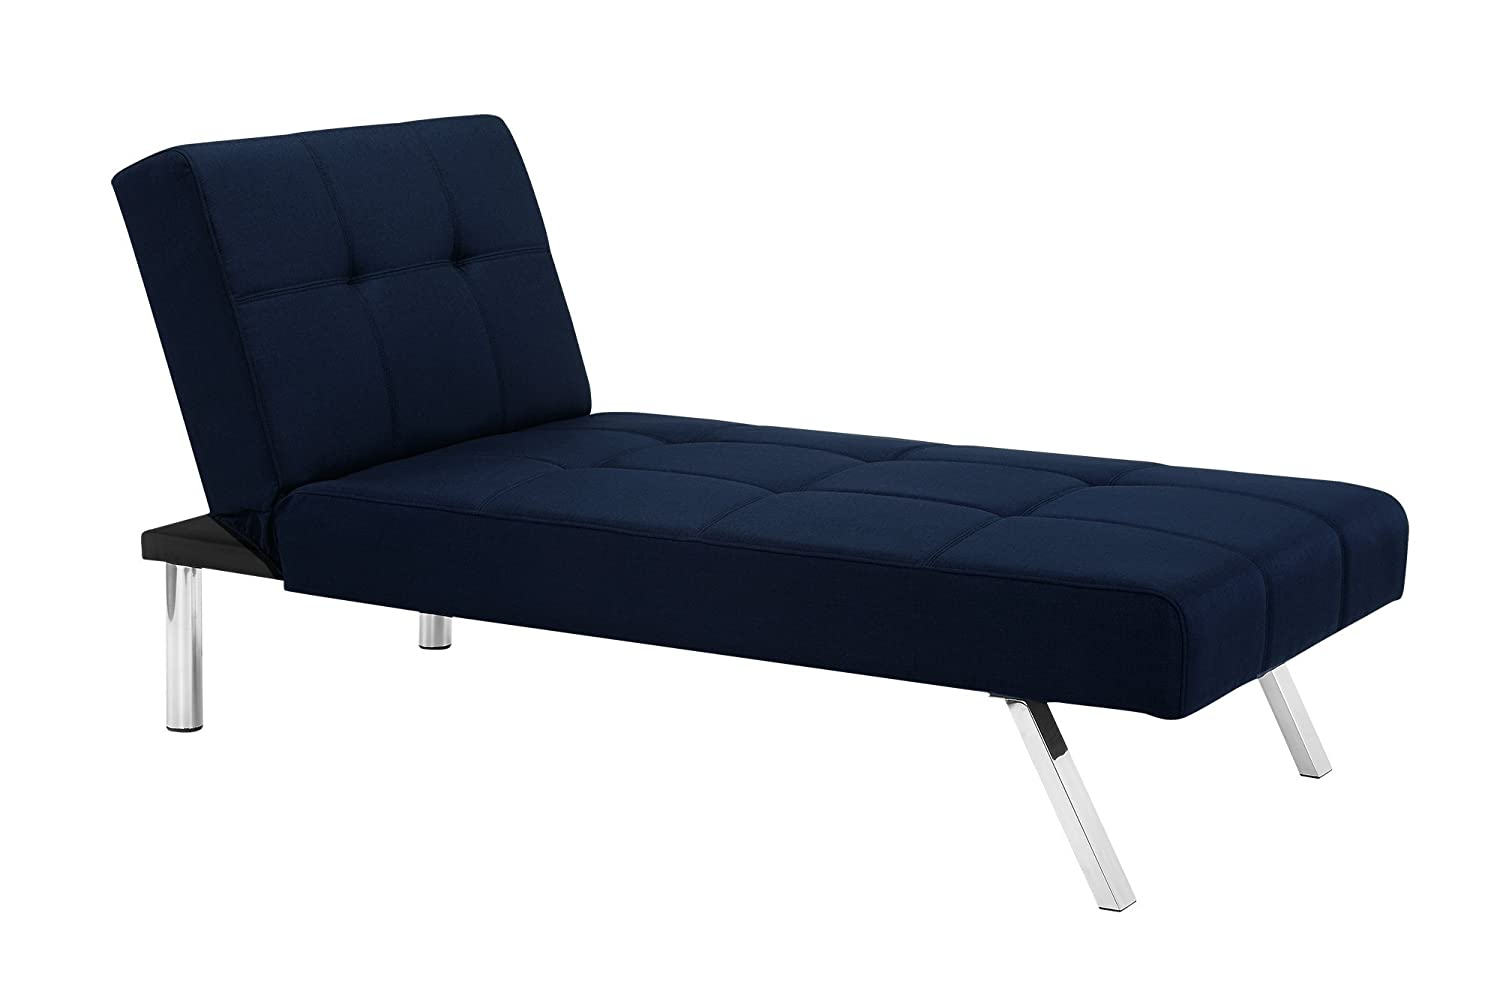 Durdham fabric chaise longue sofa bed for Chaise longue sofa bed argos